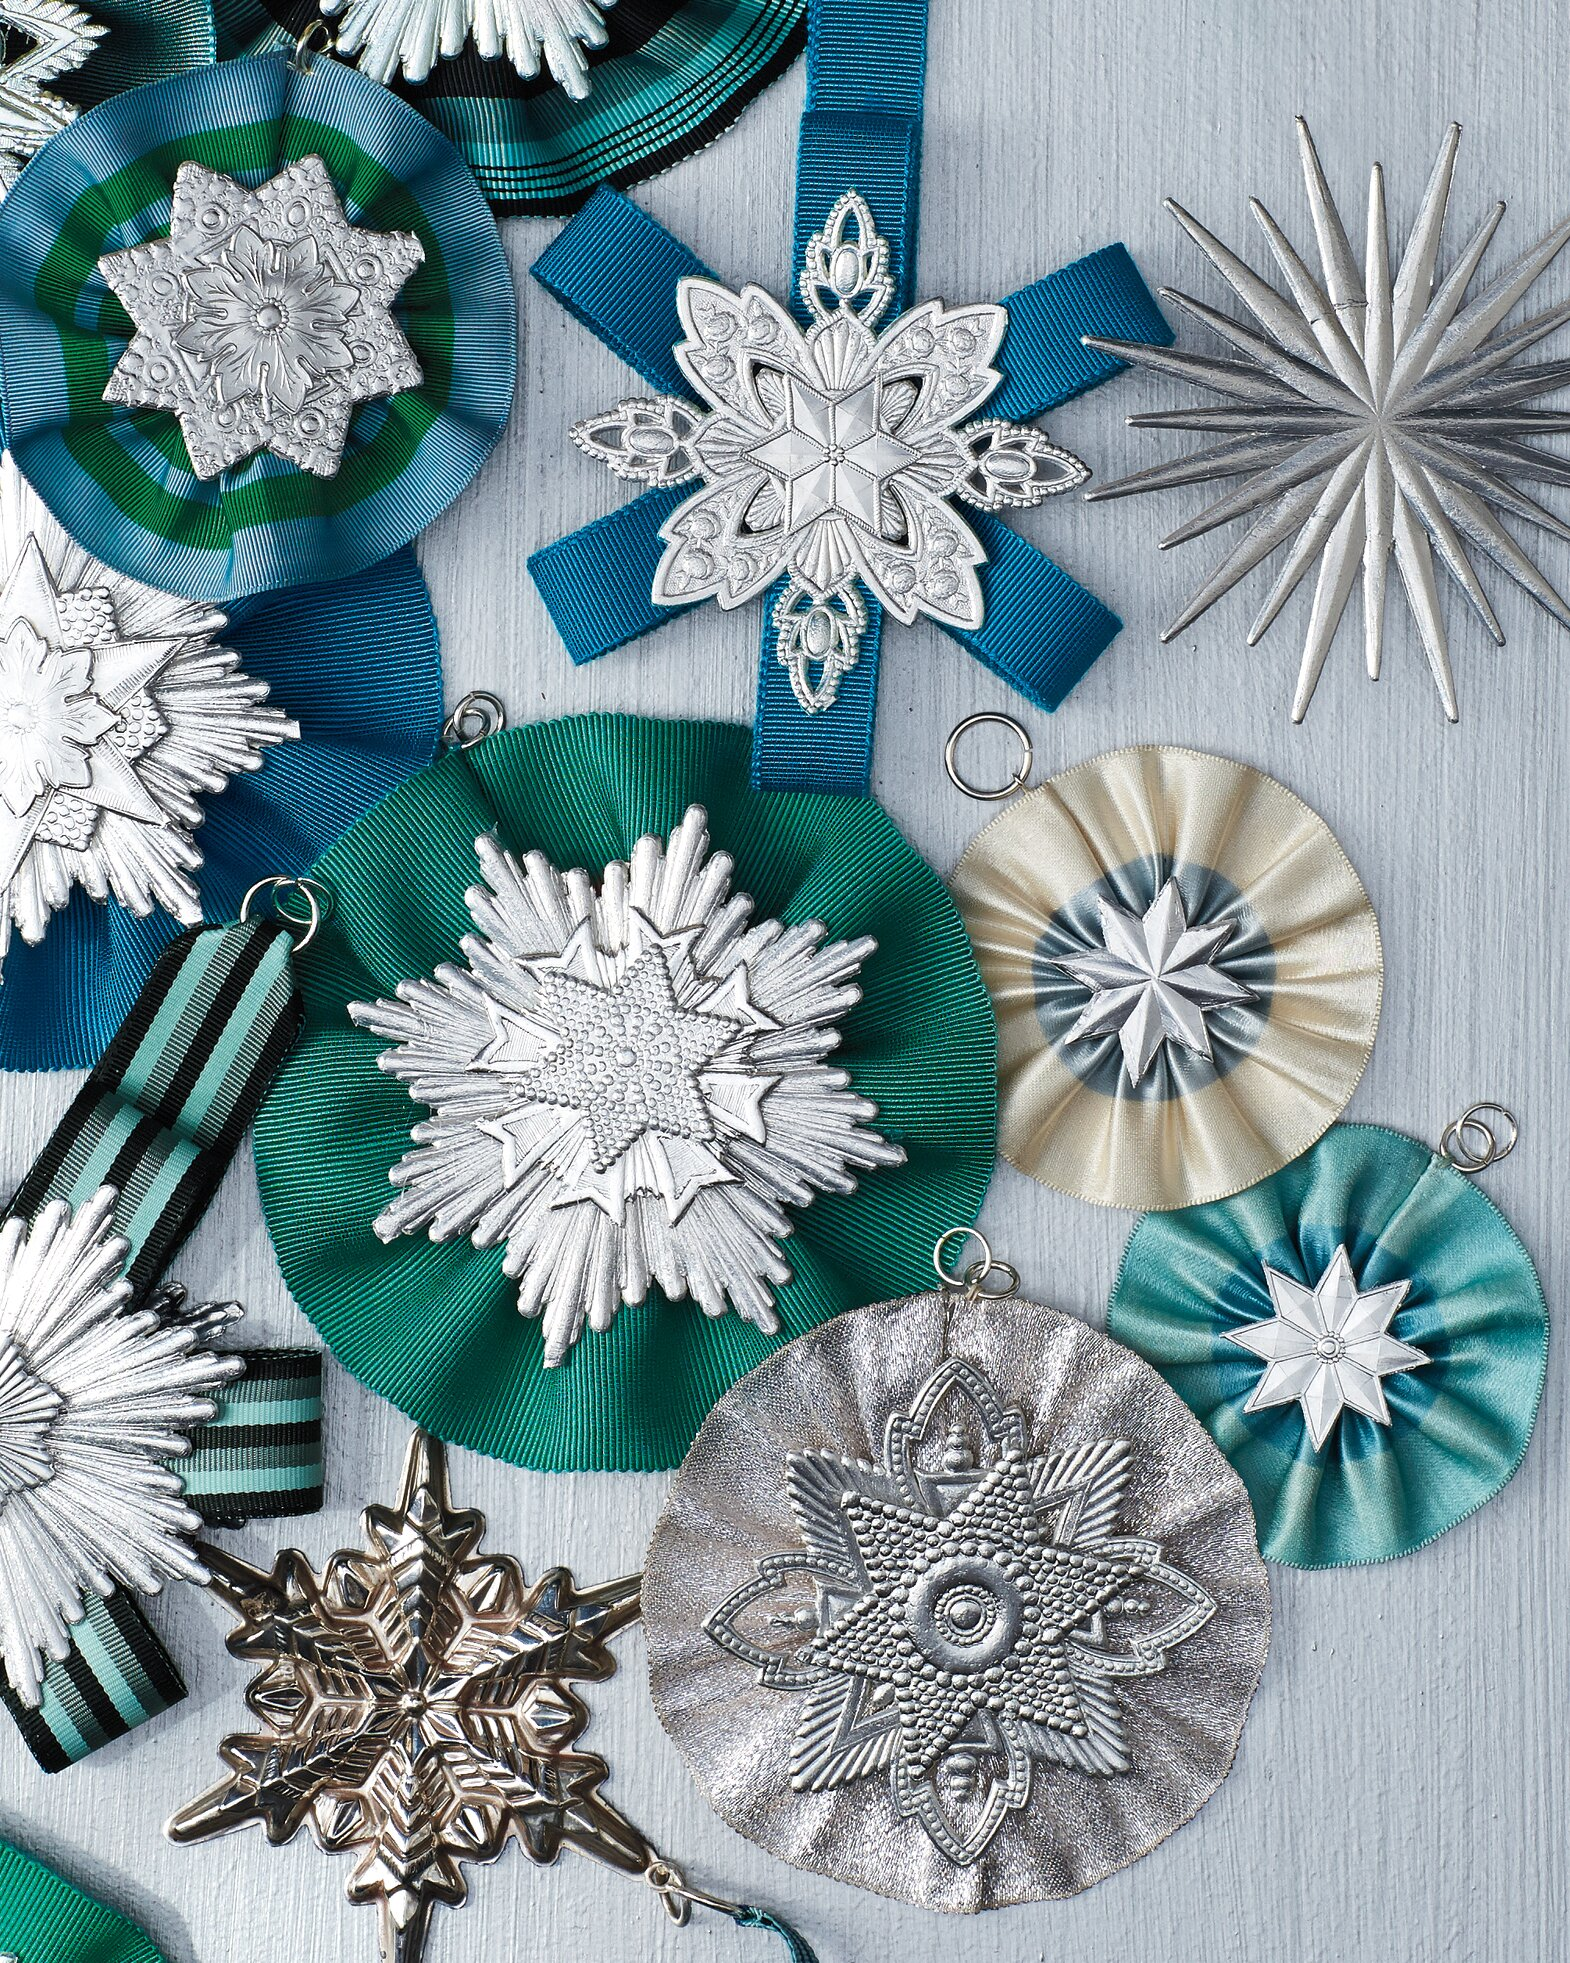 24 Of Our Most Memorable Diy Christmas Ornaments Martha Stewart